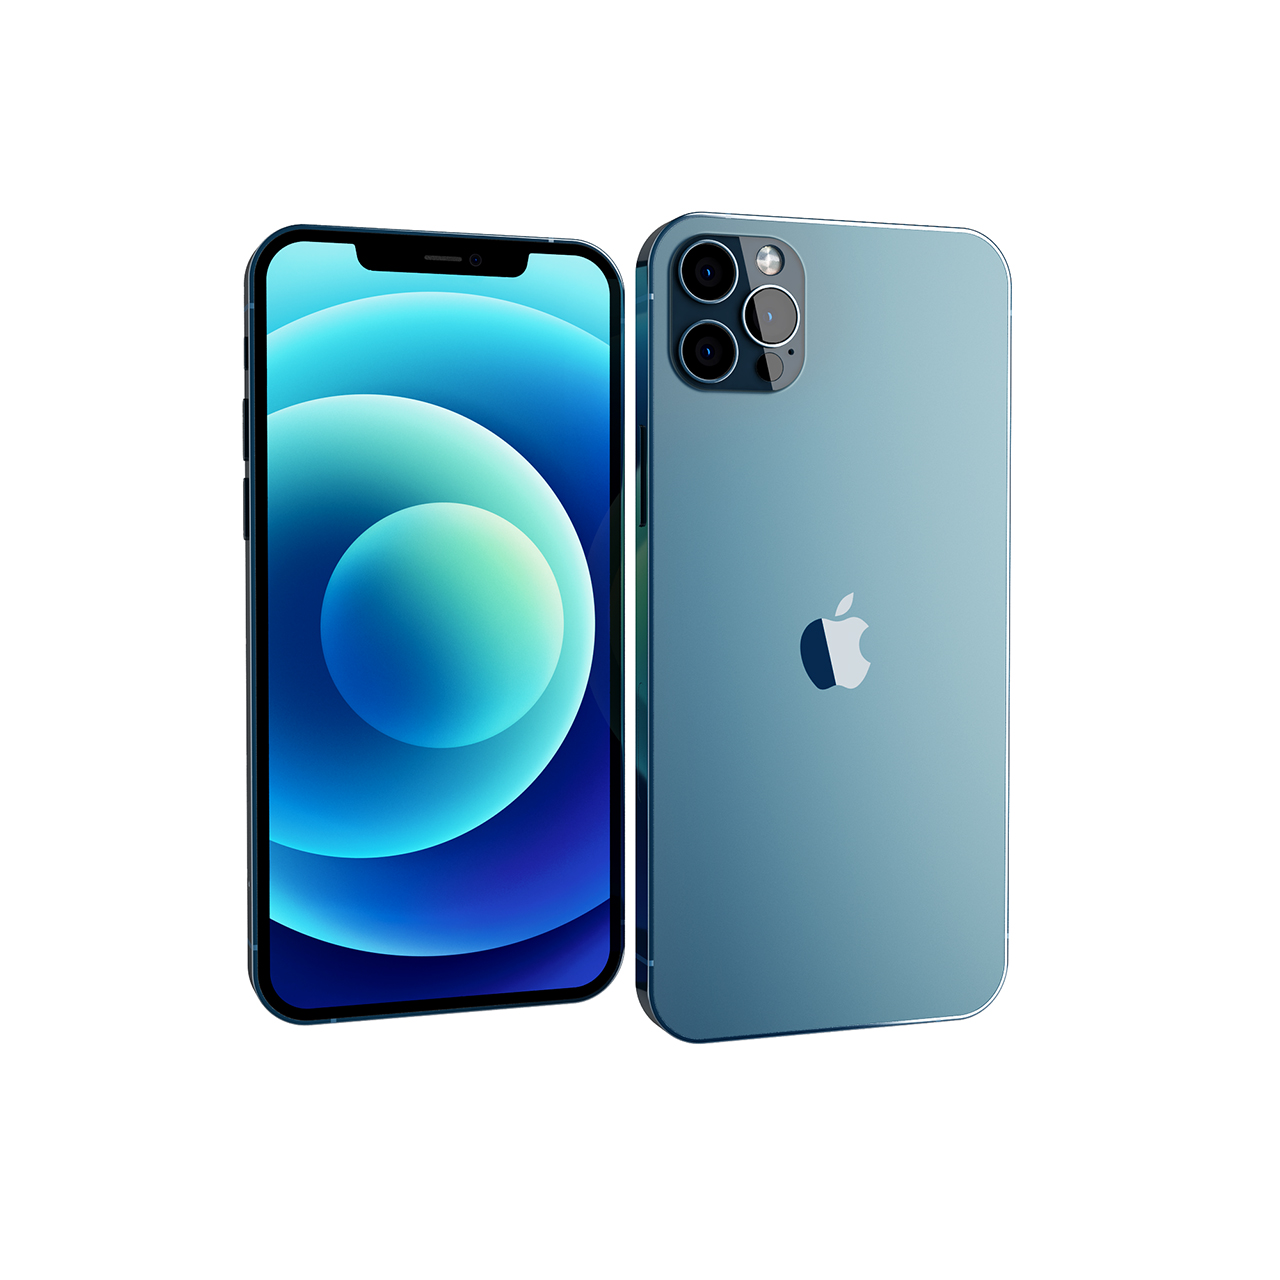 iPhone 12 Pro by Apple